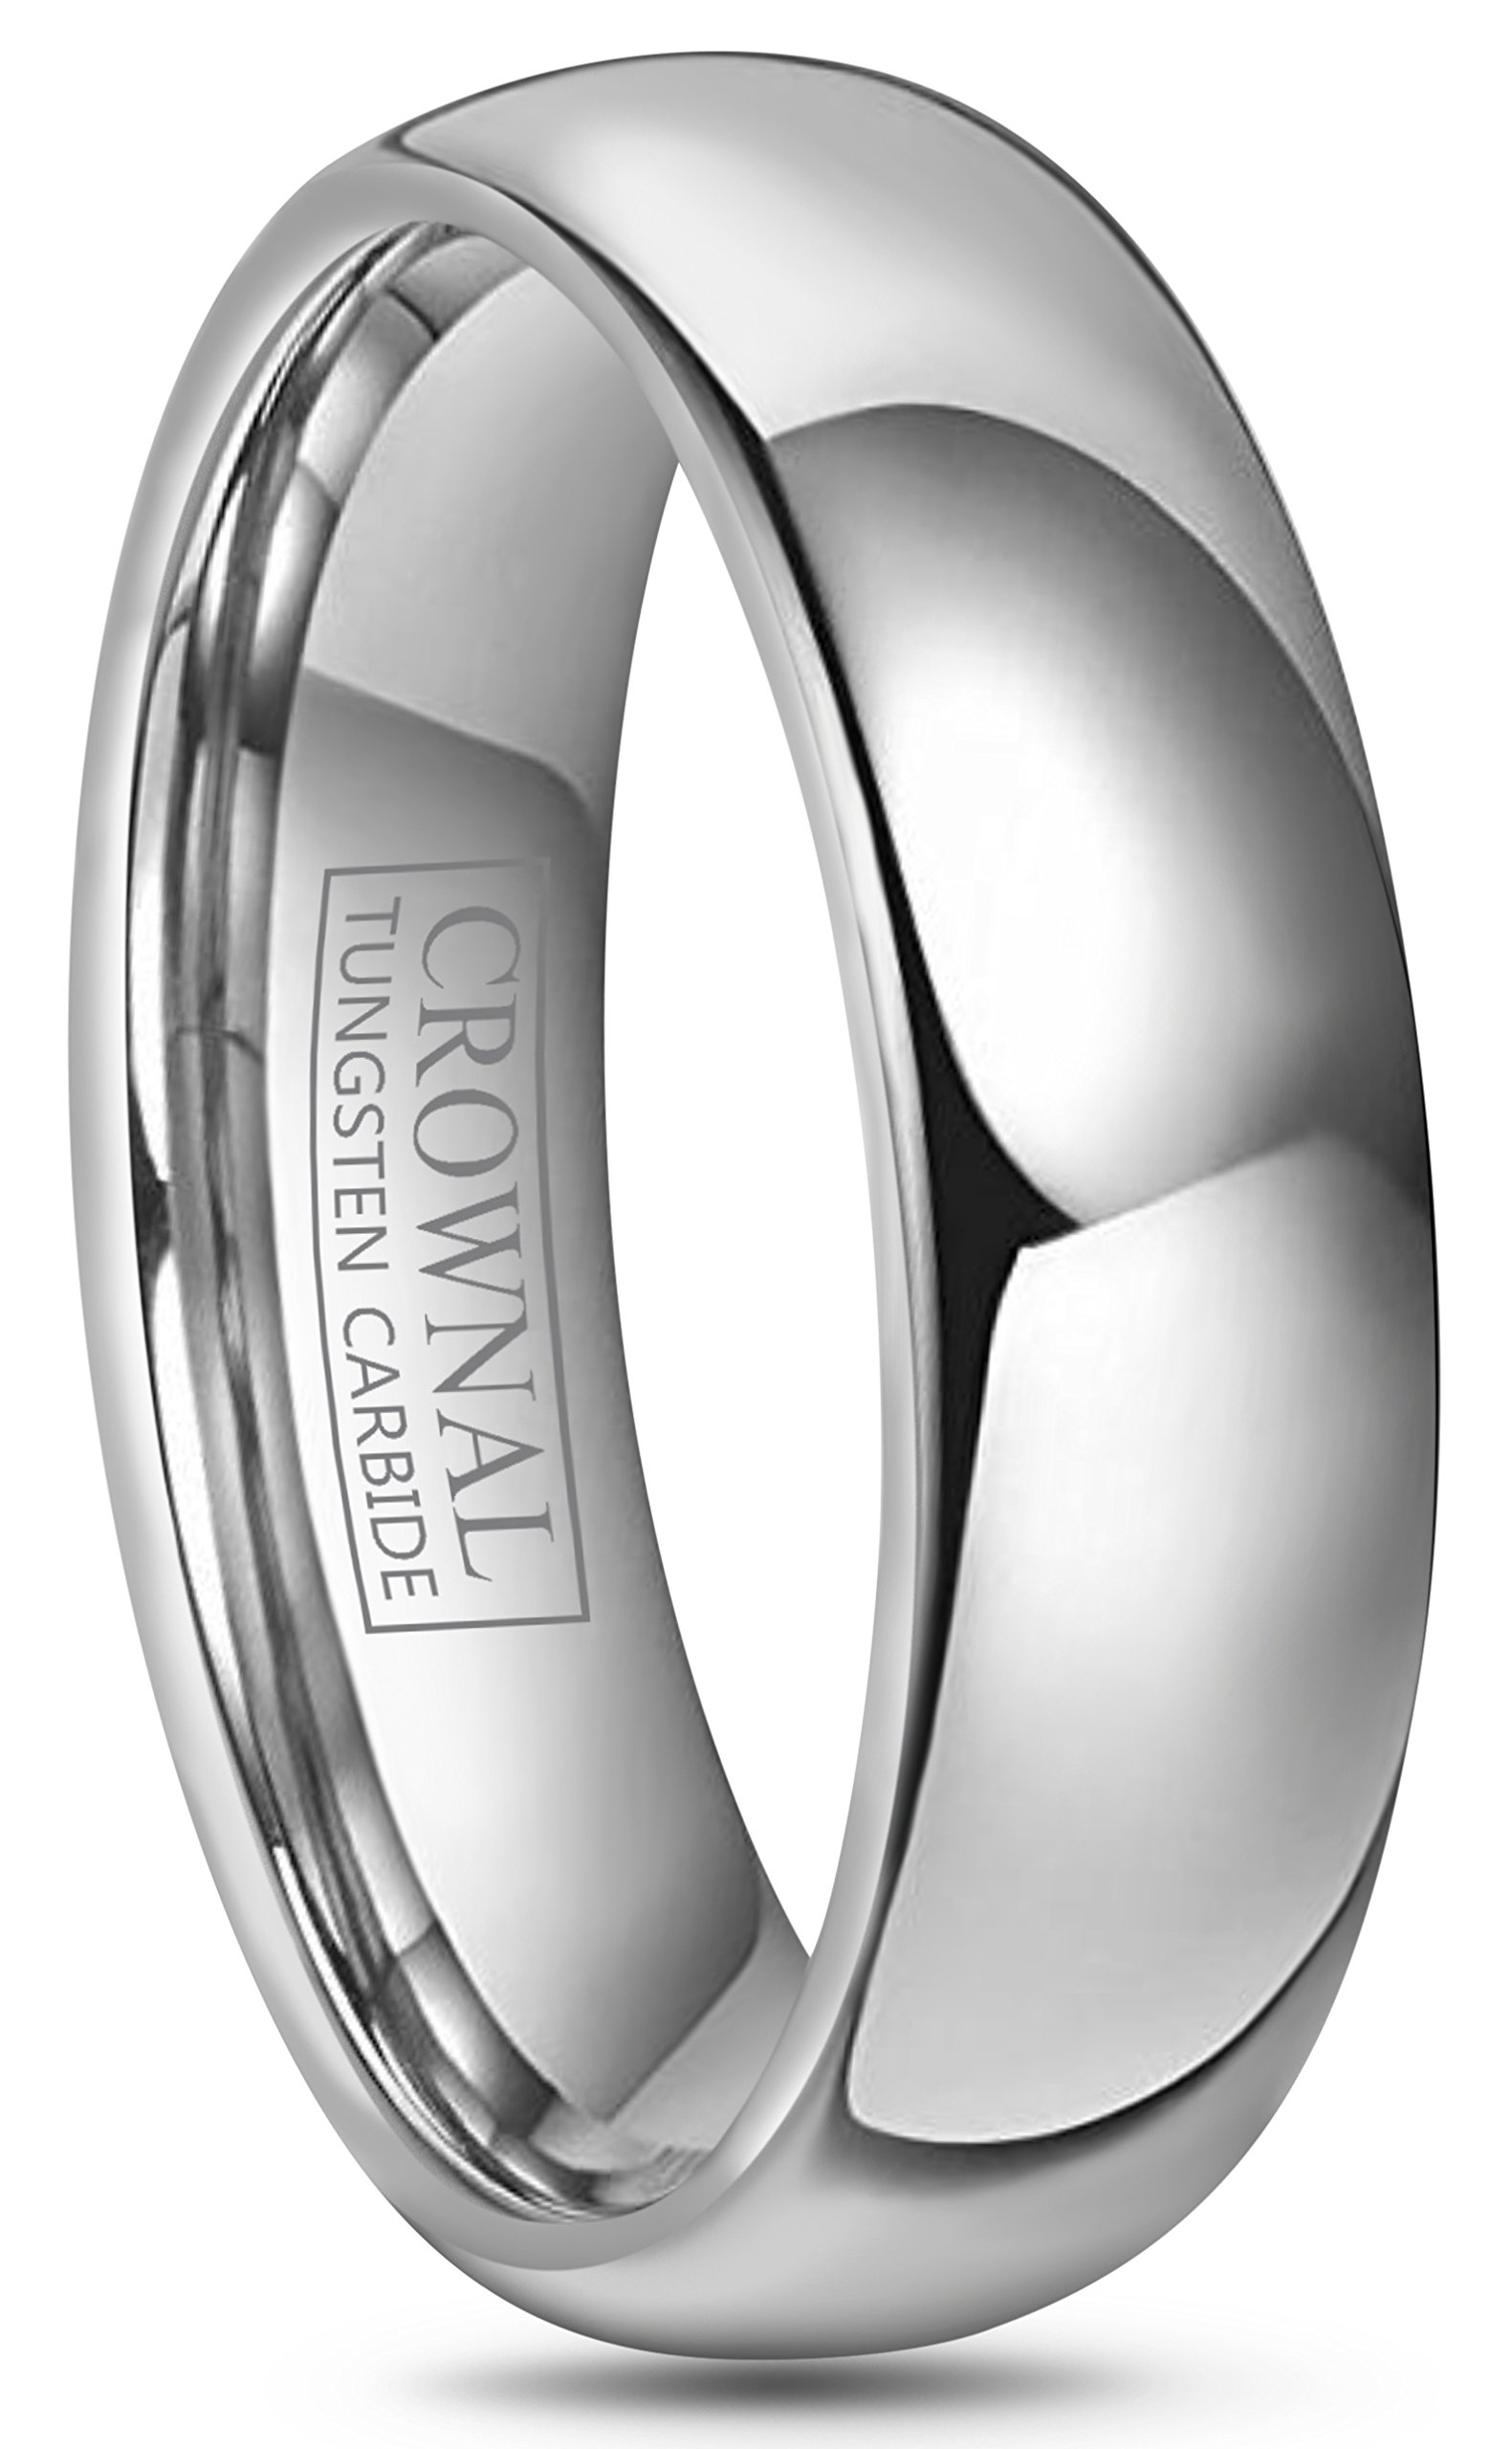 Crownal 4mm 6mm 8mm 10mm Tungsten Wedding Band Ring Men Women Plain Dome Polished Size Comfort Fit Size 3 To 17 (6mm,8.5)